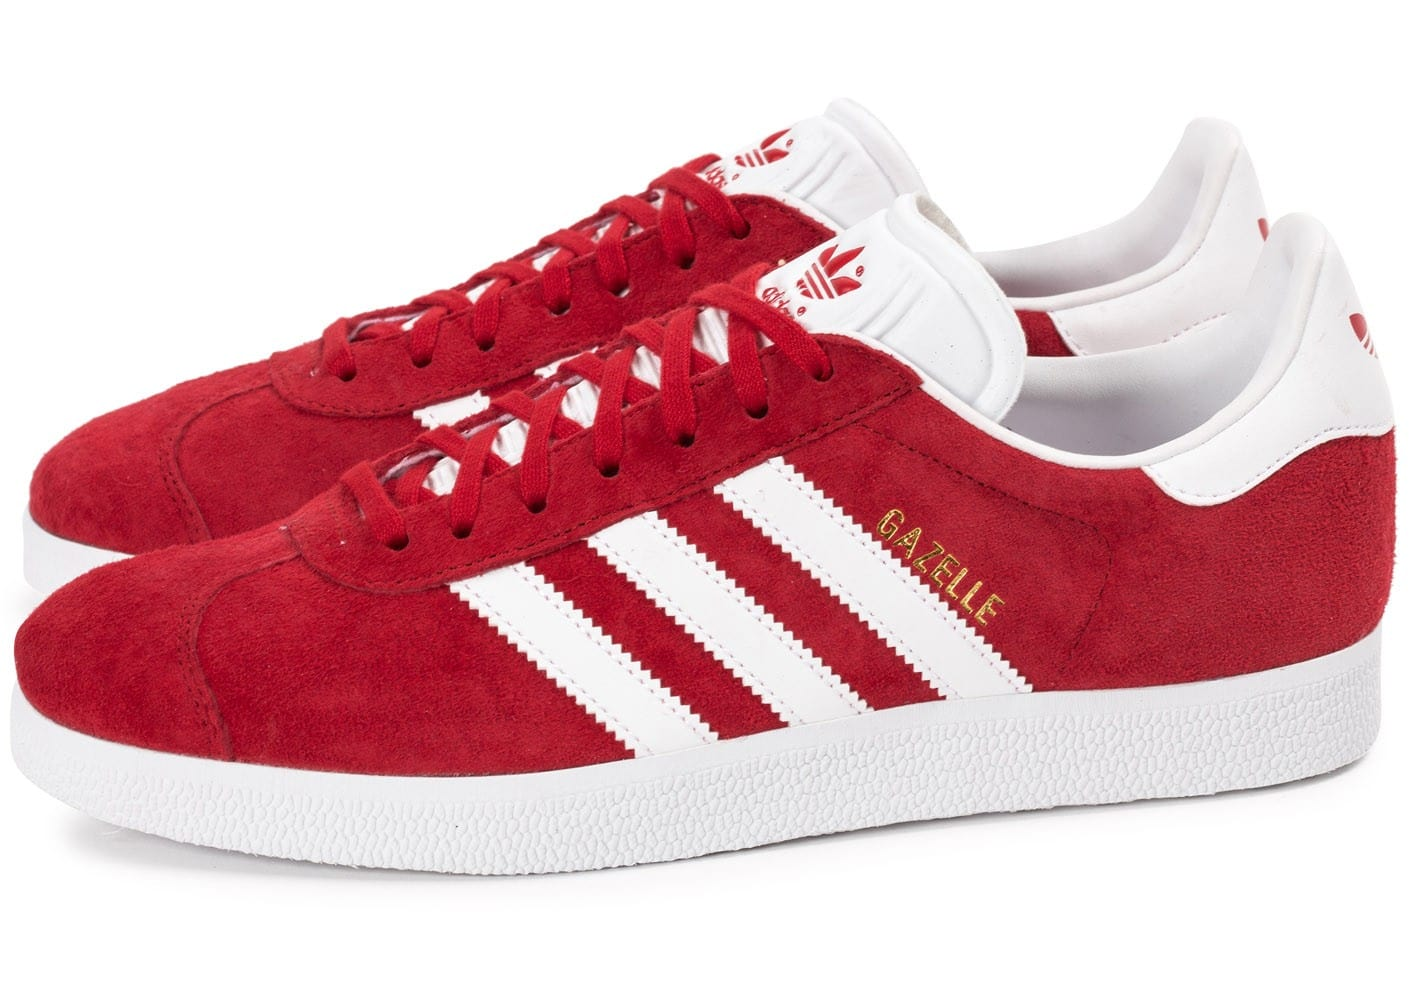 adidas gazelle rouge chaussures homme chausport. Black Bedroom Furniture Sets. Home Design Ideas